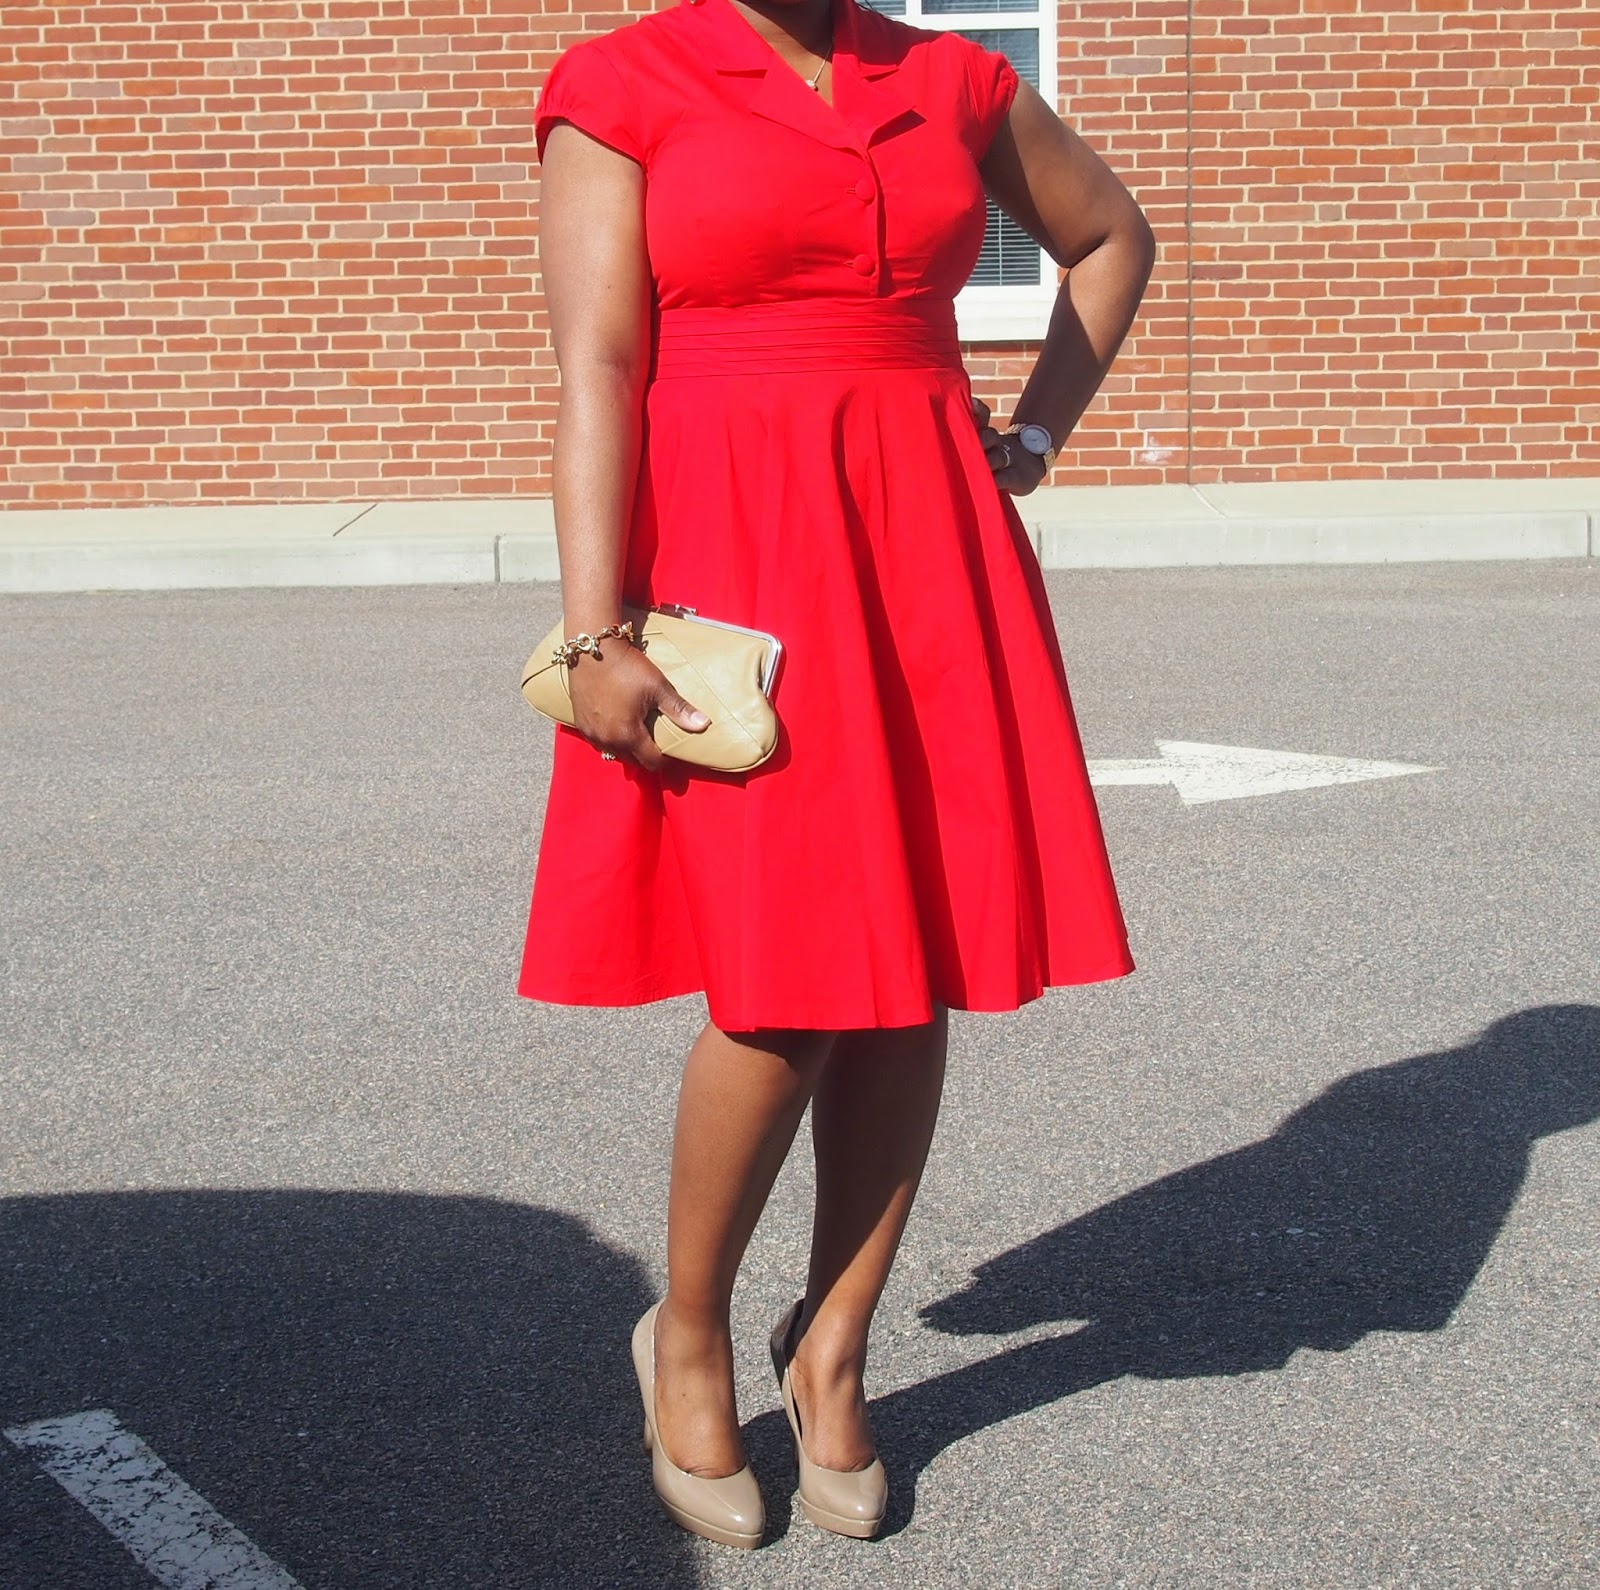 Vintage style fit and flare dress, color shoes to wear with red, nine west clutch nude